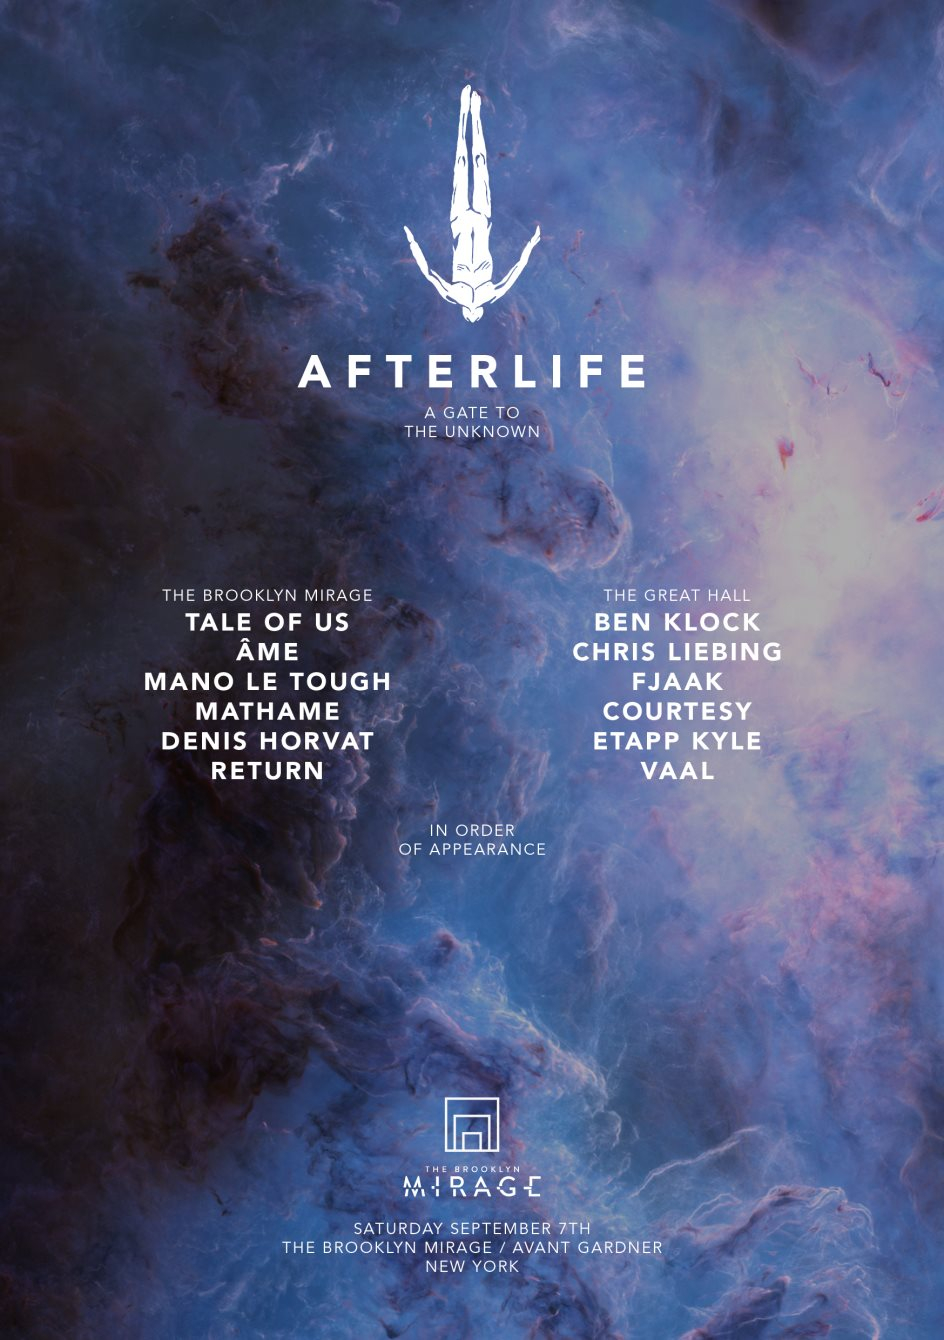 Afterlife New York - Flyer front